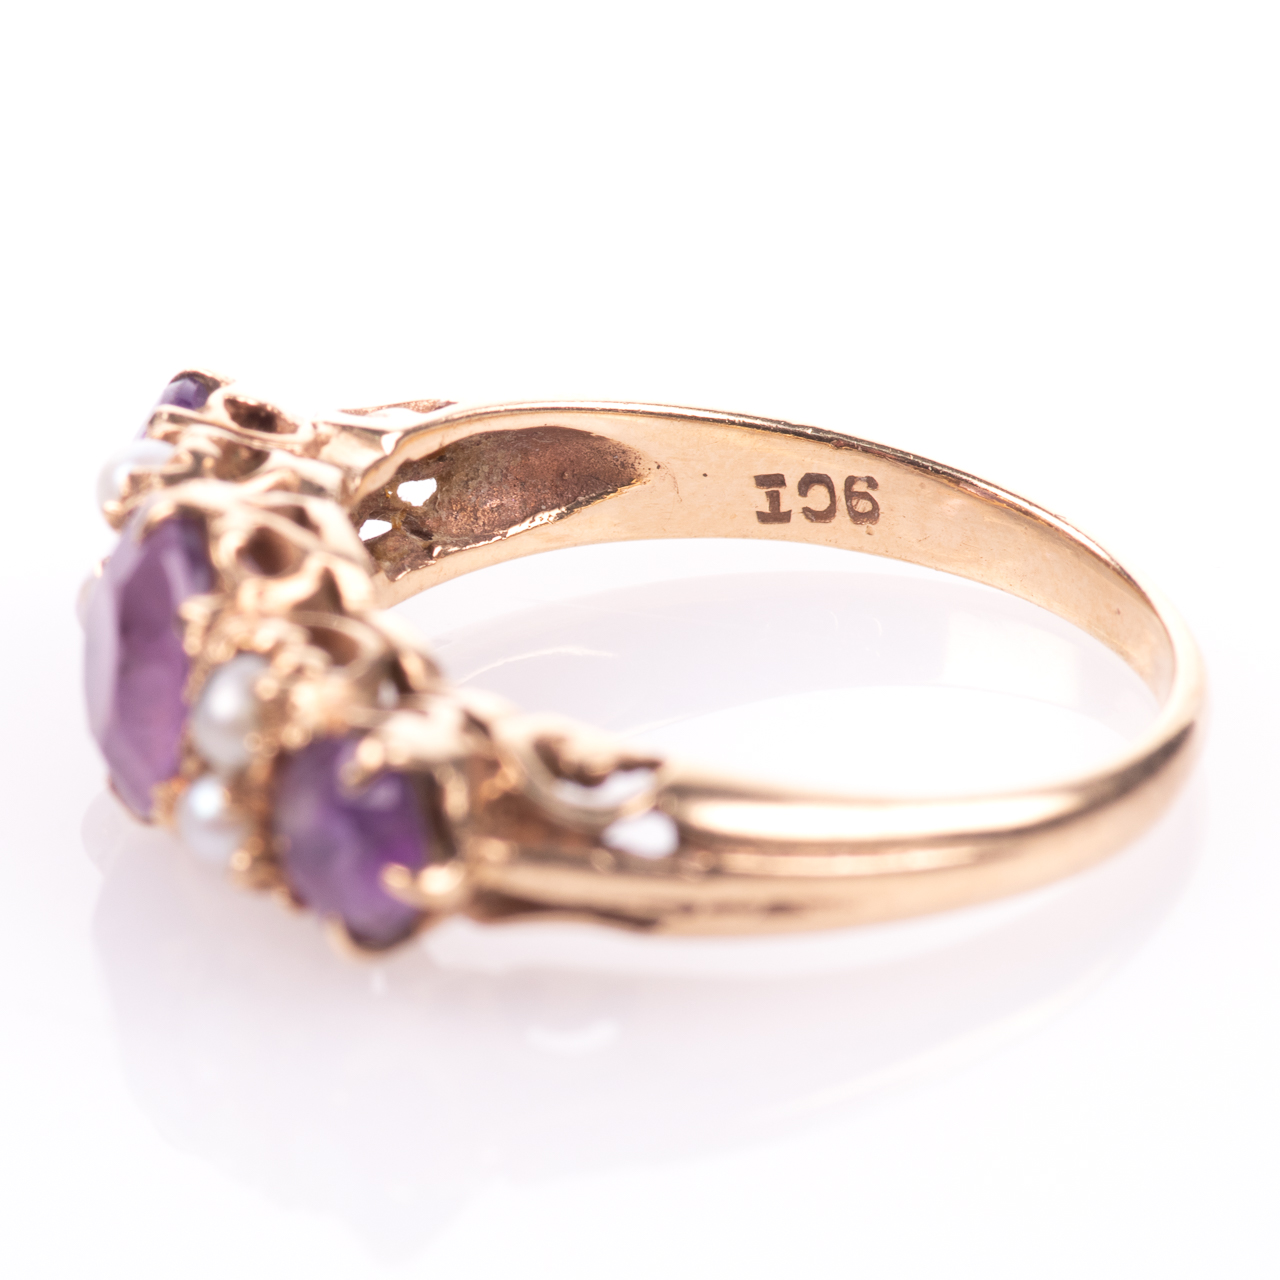 9ct Gold 2.10ct Amethyst & Pearl Ring - Image 5 of 7